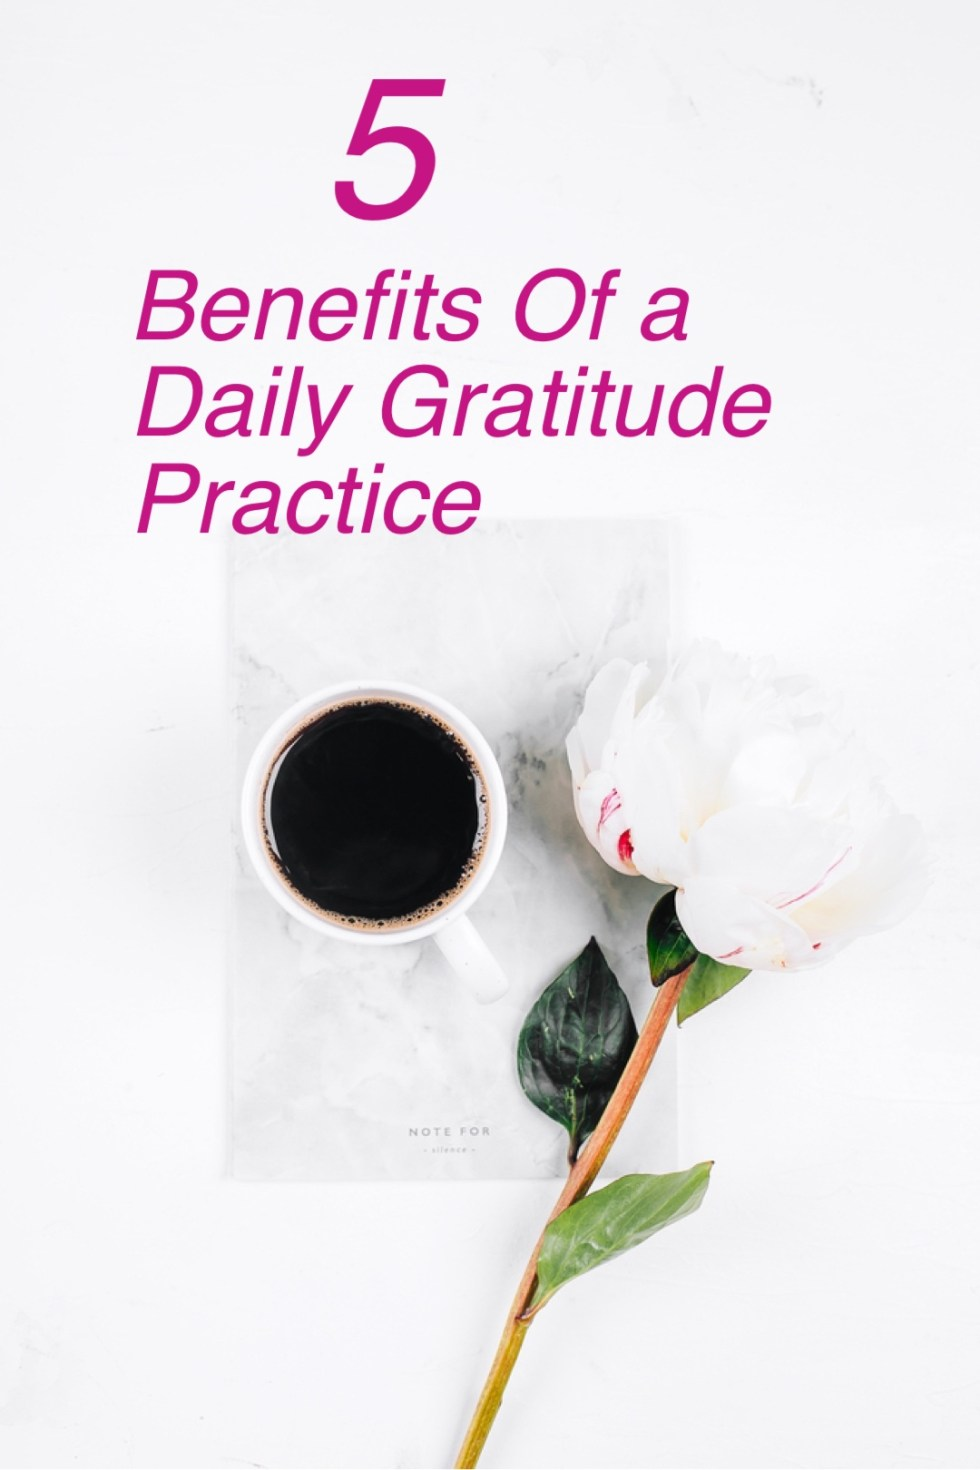 5 Benefits of a daily gratitude practice